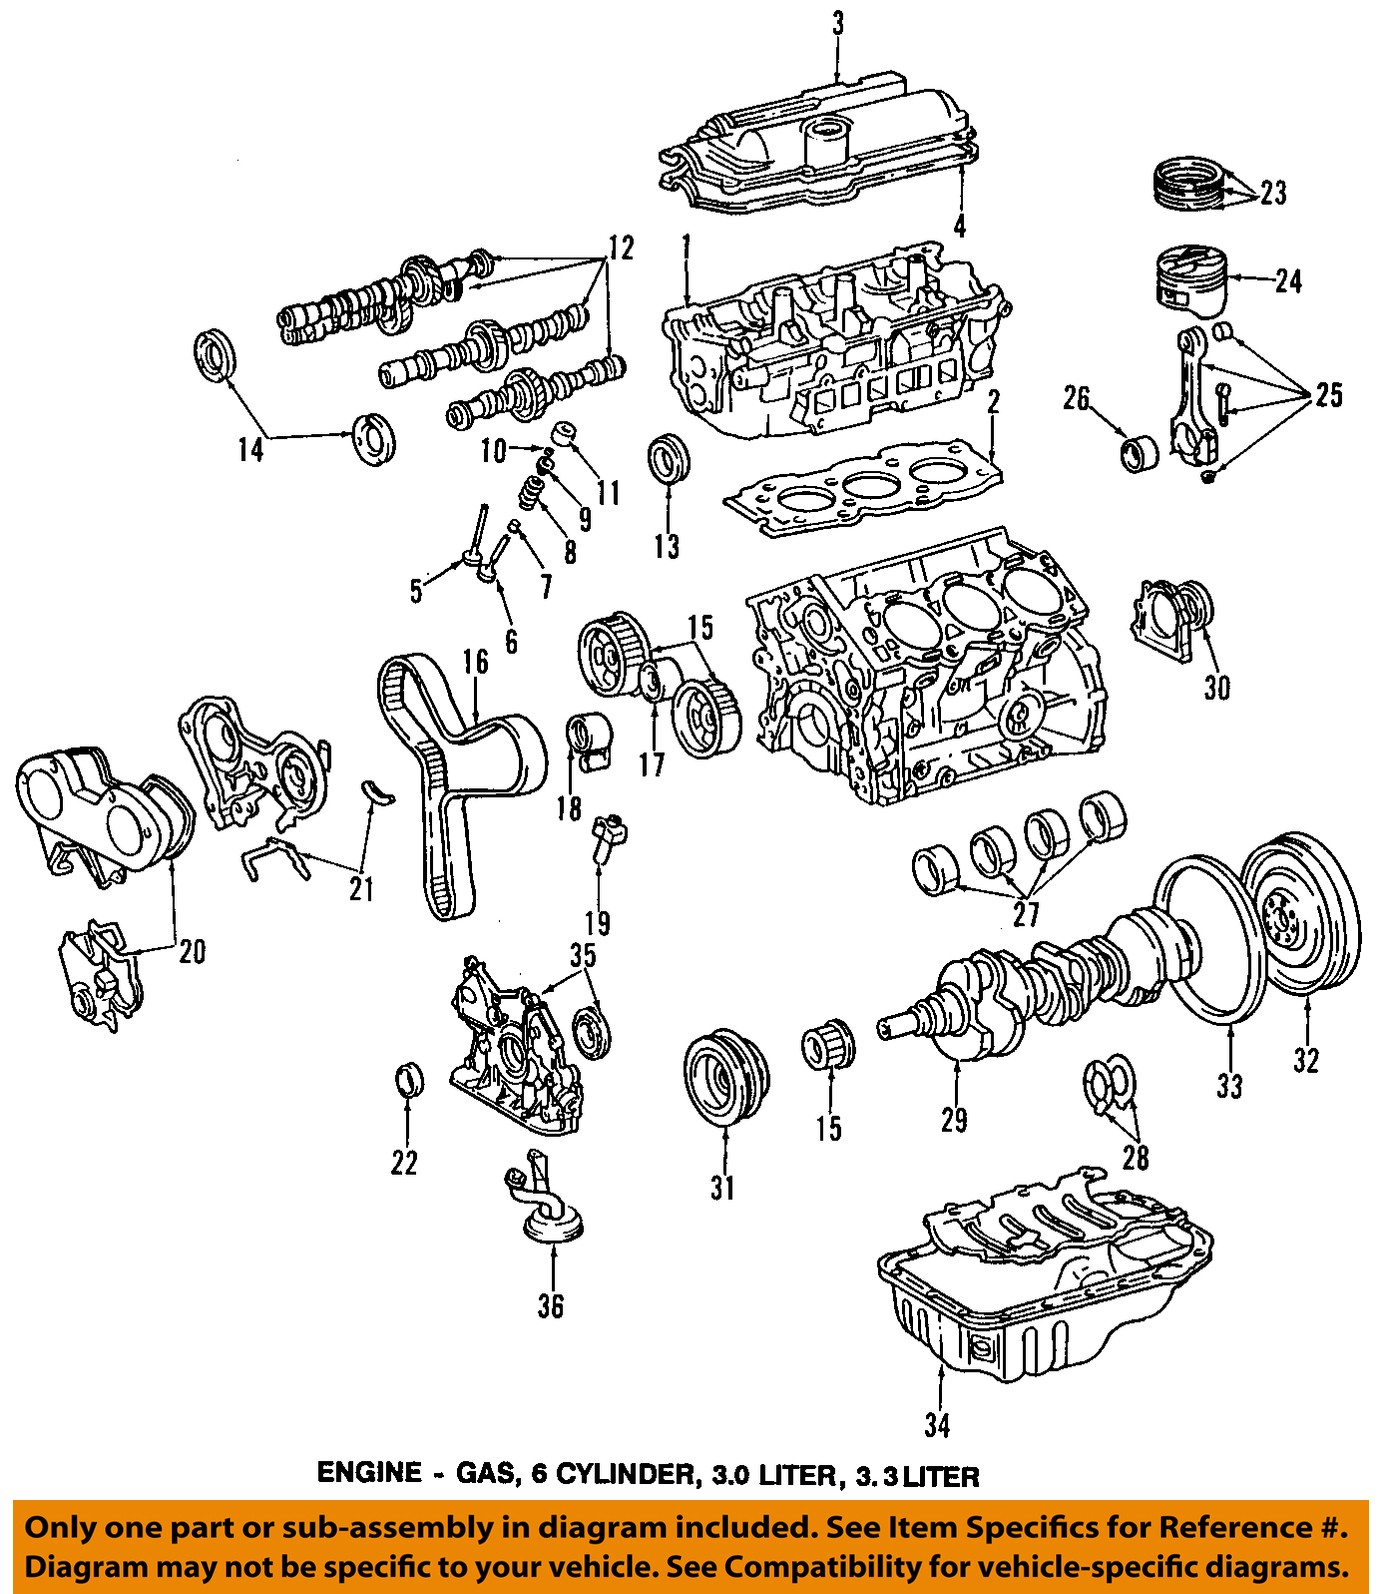 Toyota Camry V6 Engine Layout 2009 2009 Camry Engine Diagram 04 toyota Sienna Fuse Diagram Of Toyota Camry V6 Engine Layout 2009